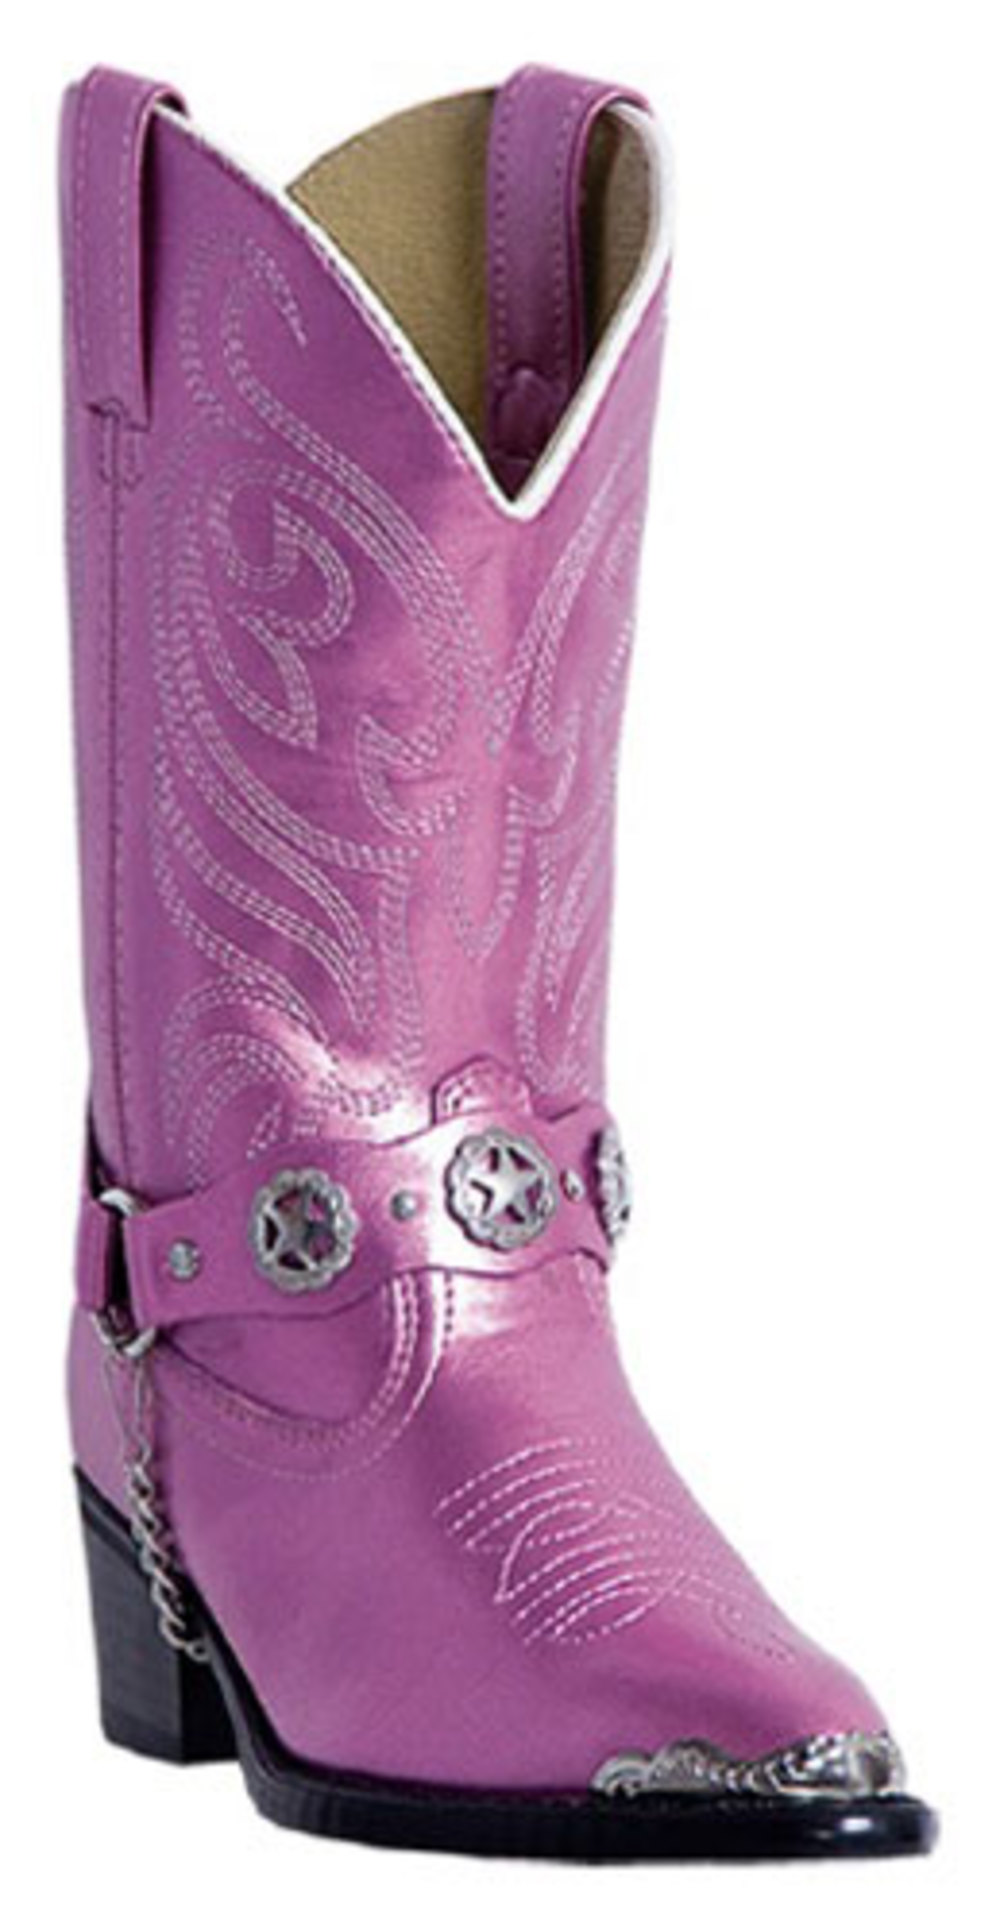 Laredo Kid's Boots Hot Pink Pearl 11 D by